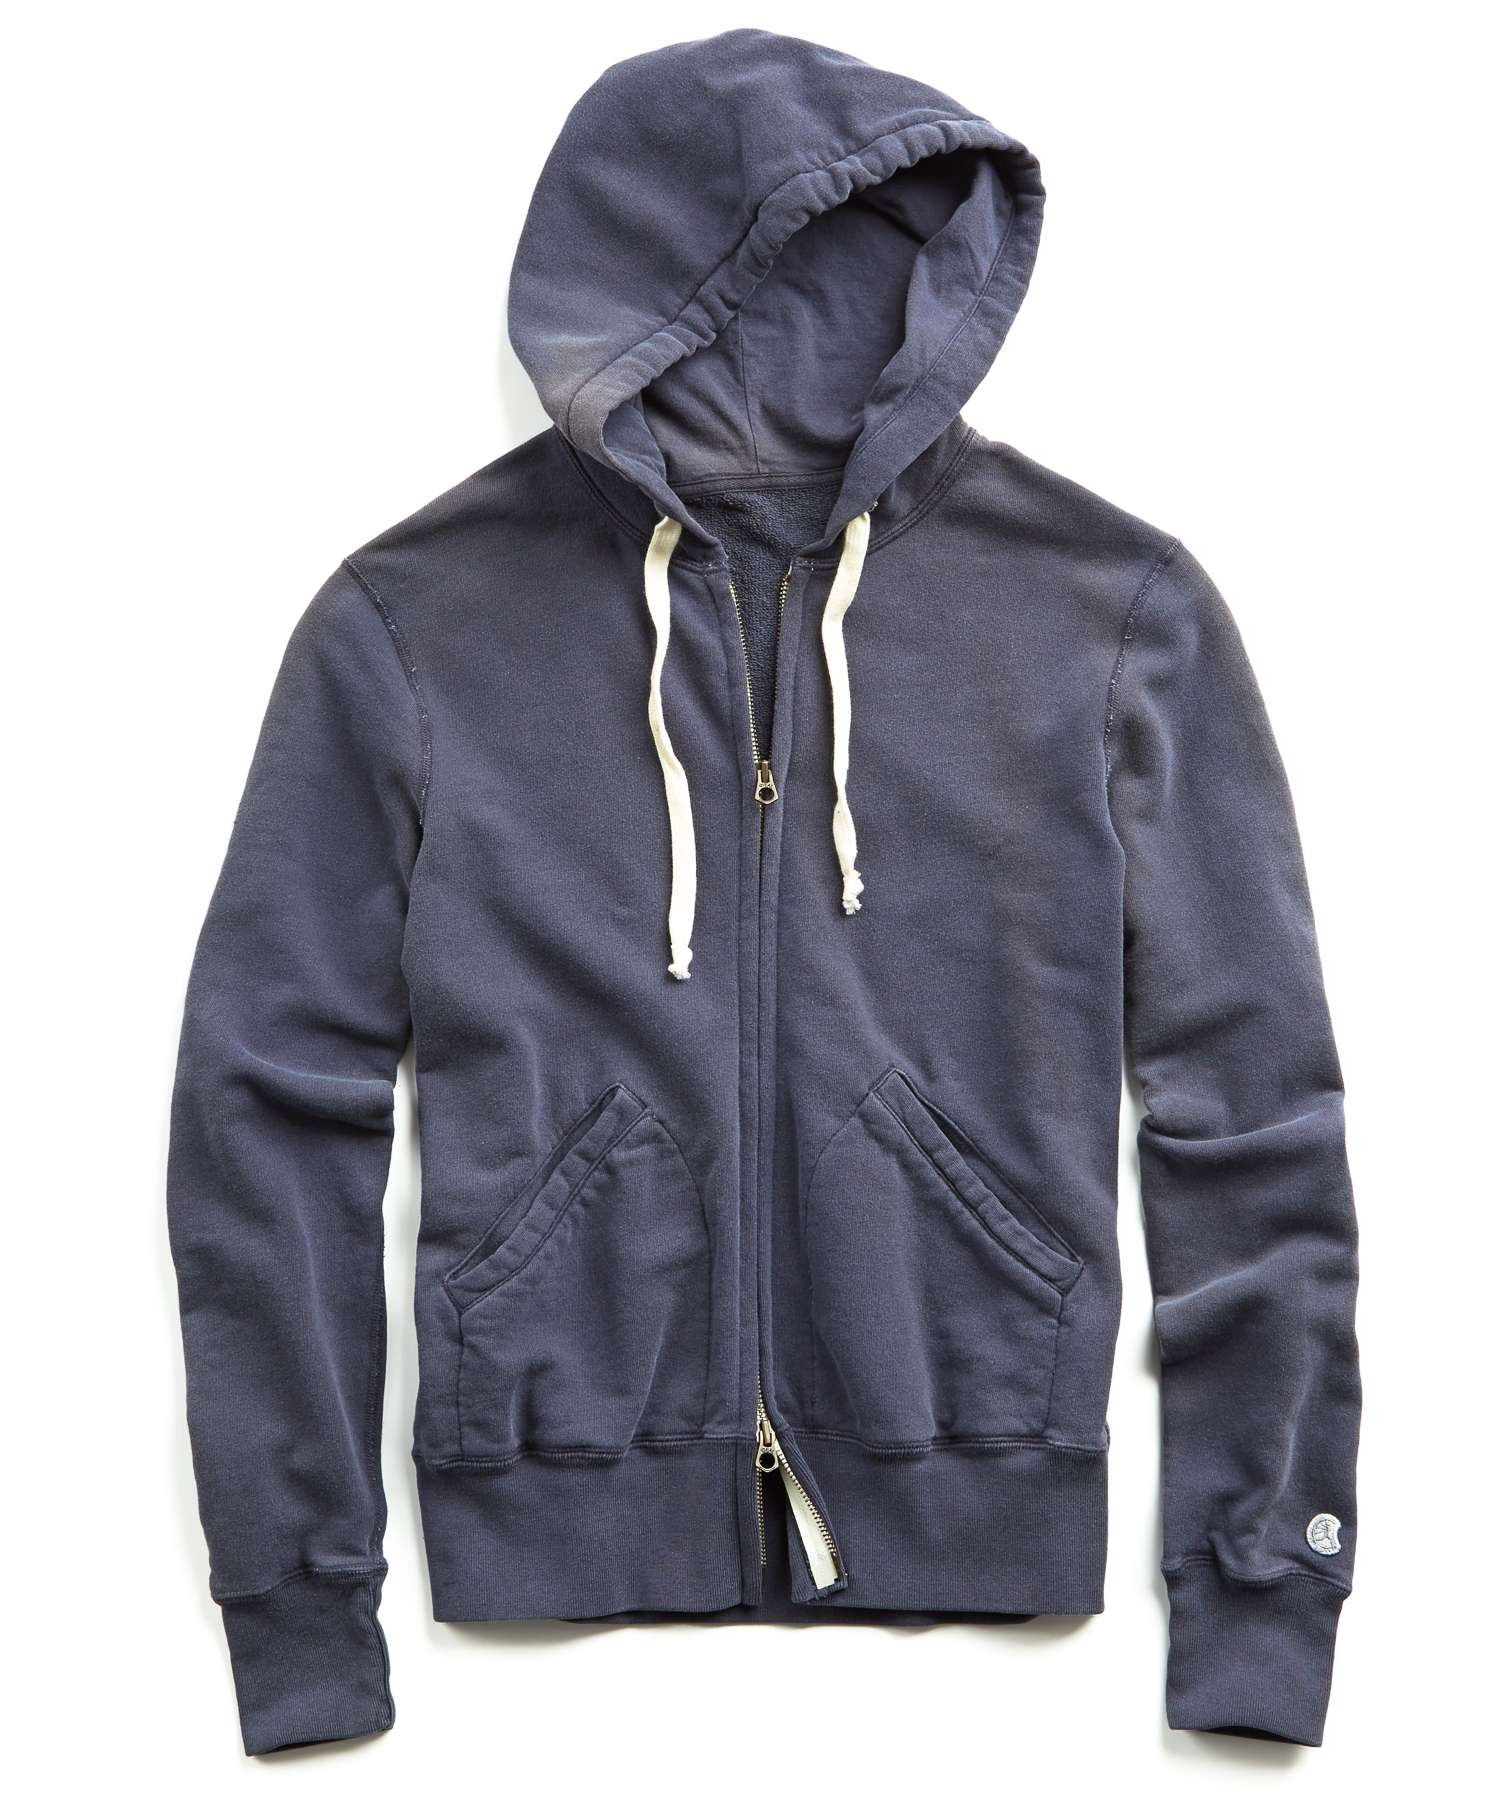 6658d5164096 TODD SNYDER Classic Full Zip Hoodie in Navy.  toddsnyder  cloth